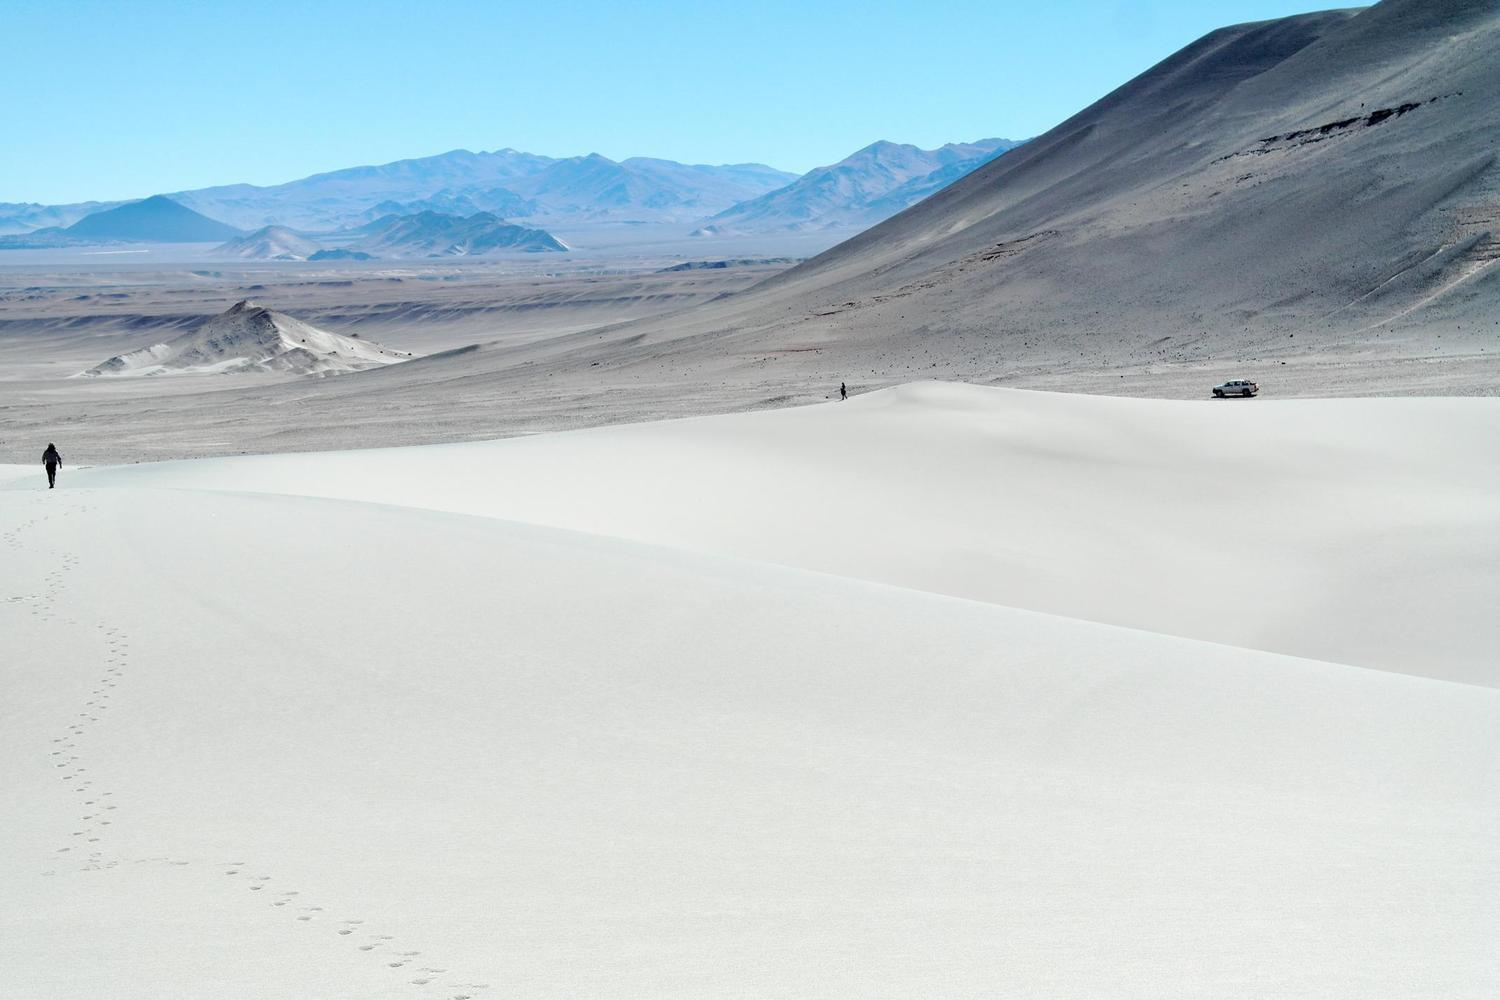 argentina-salta-sand-dunes-puna-two-people-walking-towards-vehicle